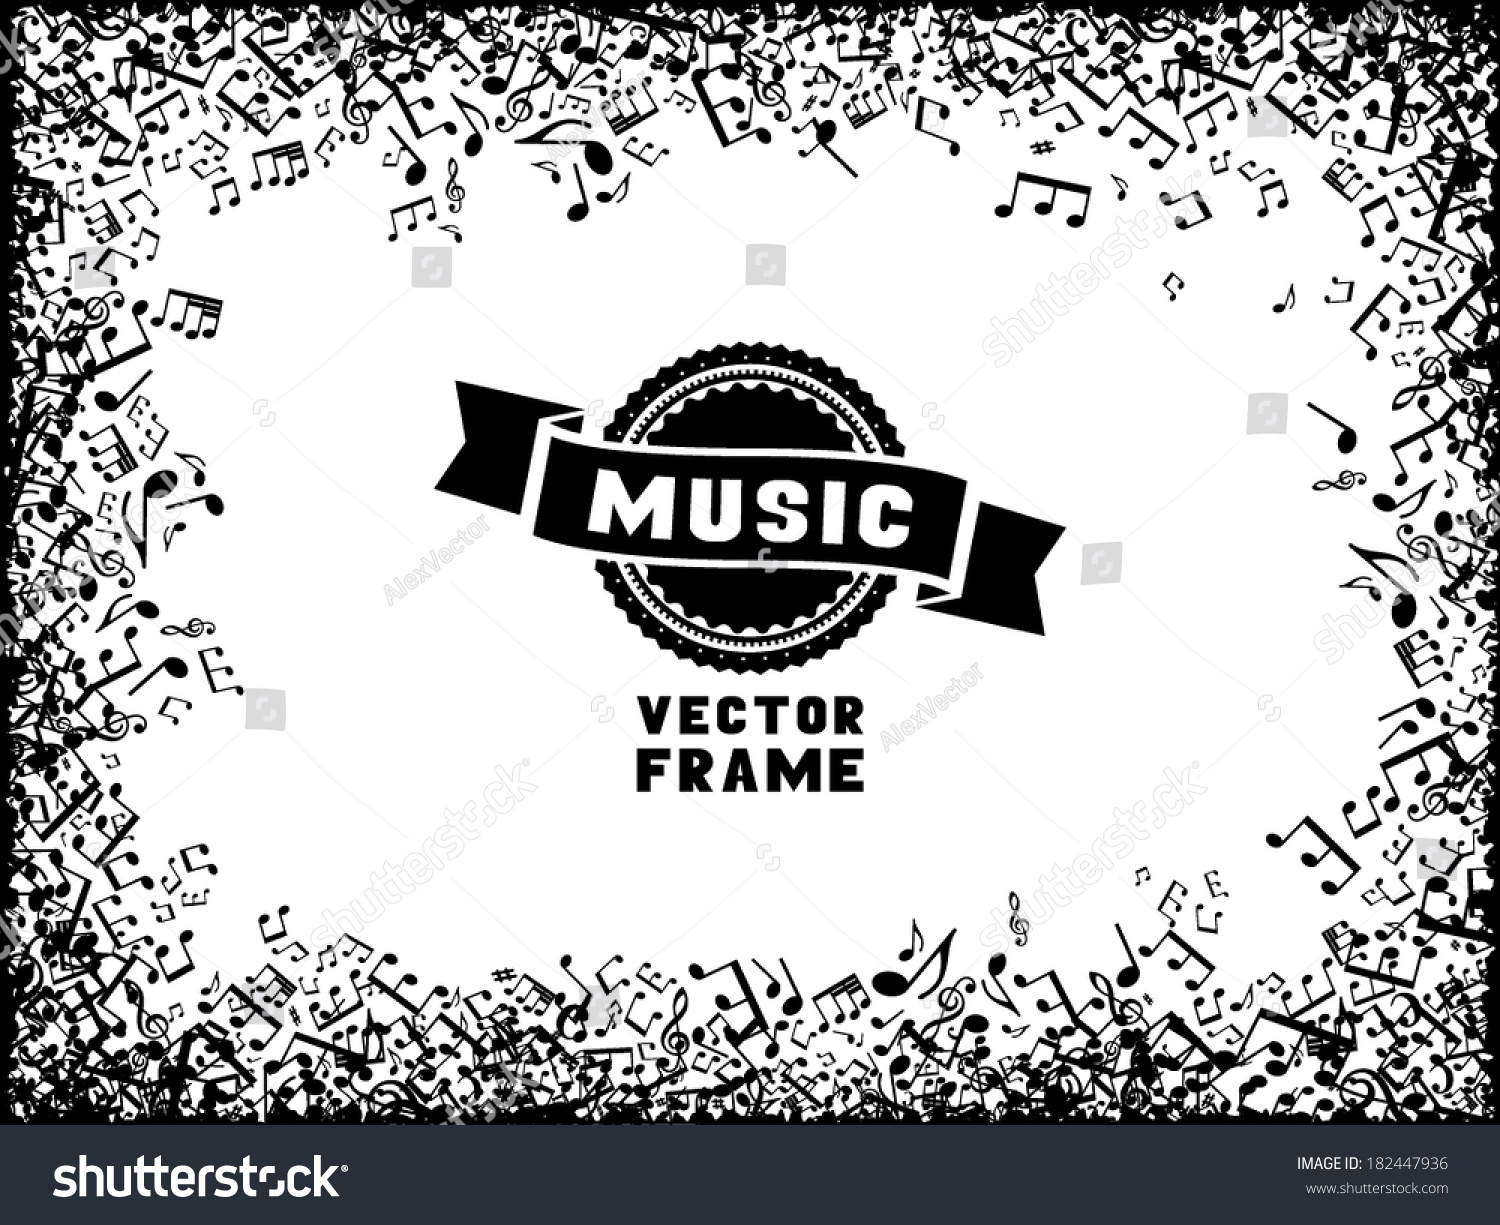 Music Frame Set Black Music Elements Stock Vector HD (Royalty Free ...